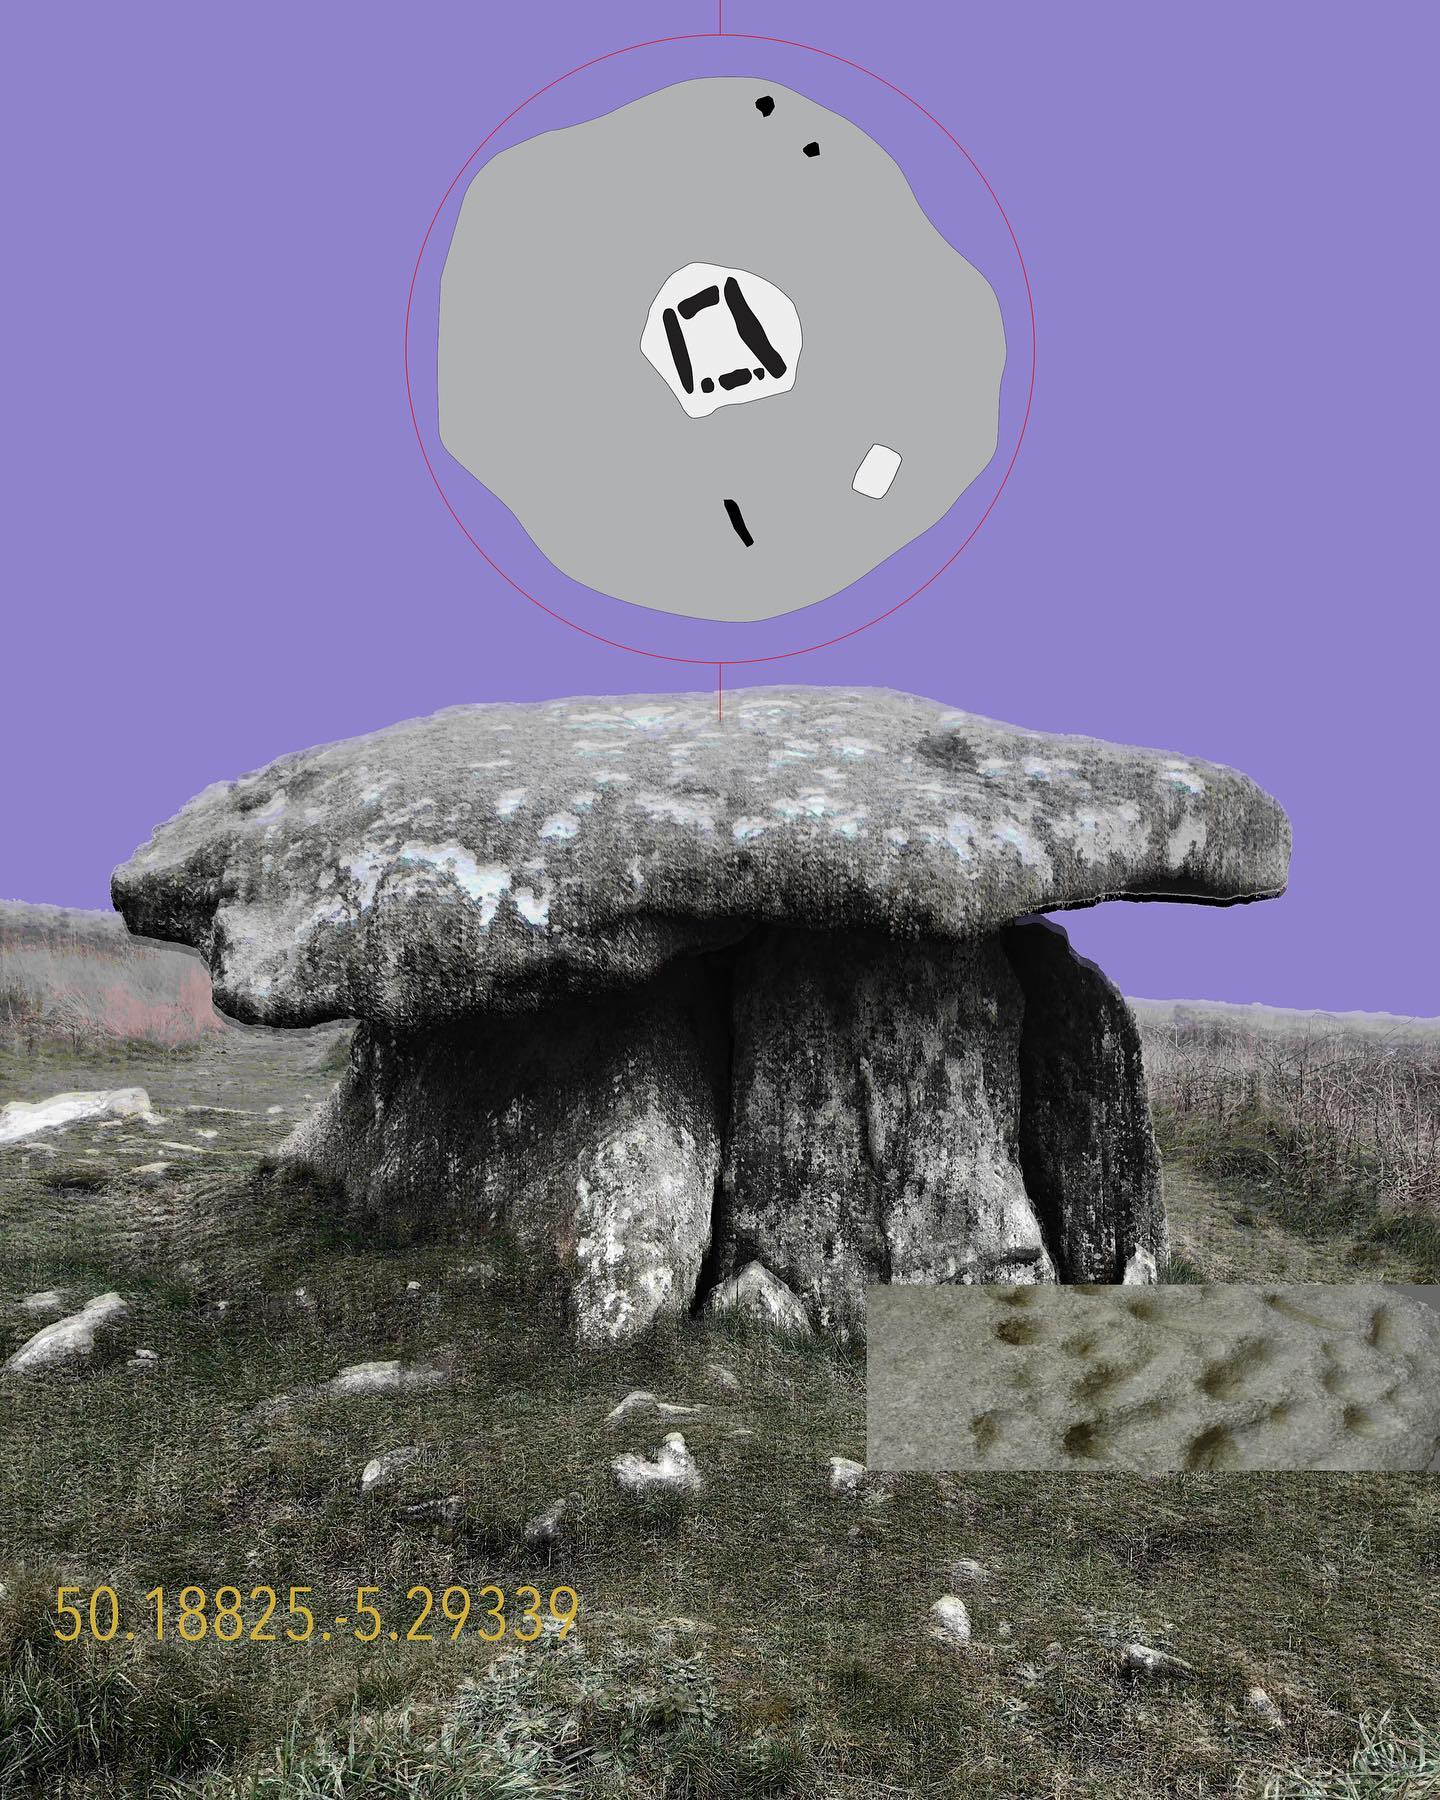 chun quoit. 'theatres of memory'. constructed image. neolithic portal dolmen trevor watkins :they began touse their built environment as a frame of symbolic reference, imbued withmeaning and significance. for thefirst time in human history, they had devised means of embodying abstractconcepts, beliefs and ideas aboutthemselves and their world in externalised, permanent forms. by means ofarchitecture, they constituted notonly frameworks for the social life of the community and its constituent families or households but also'theatres of memory' in which the history of the community, its inhabitants and formerinhabitants, andmuch else was recorded, retained and transmitted. plan: shows approximate extent of low mound, its orientation in relation to due north and the position of the possible burial cist. no remains have been located at the quoit either within the cist or the quoit's chamber. insert: neolithic. cup marked blocking stone at the tregiffian chambered tomb. ...#neolithic #portaldolmen #quoit #dolmen #memory #ancienthistory #archaeology #ancientmonuments #chunquoit #westpenwith #cornwall #ancientarchitecture #prehistory #architecture #constructedimage #montage more at montagecity.com